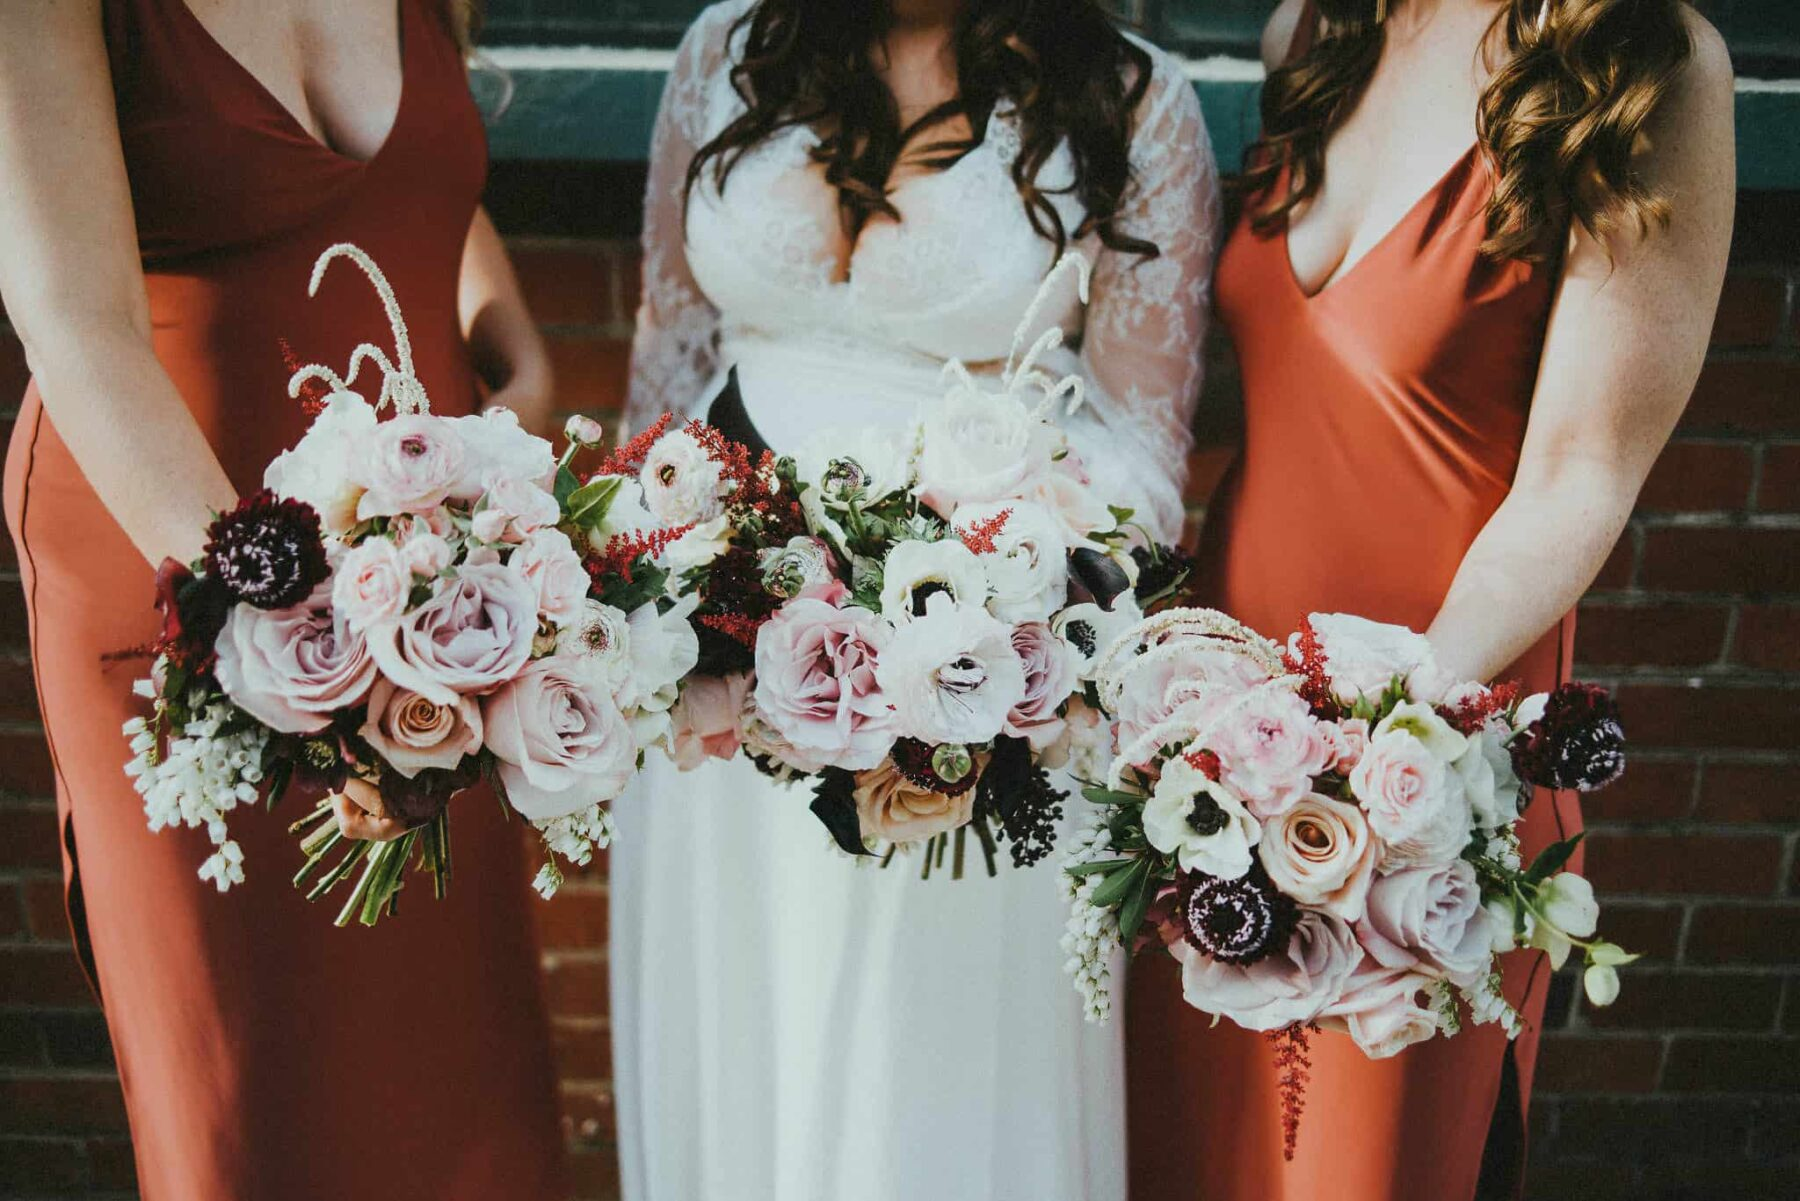 terracotta-toned bridesmaid dresses by Natalie Rolt